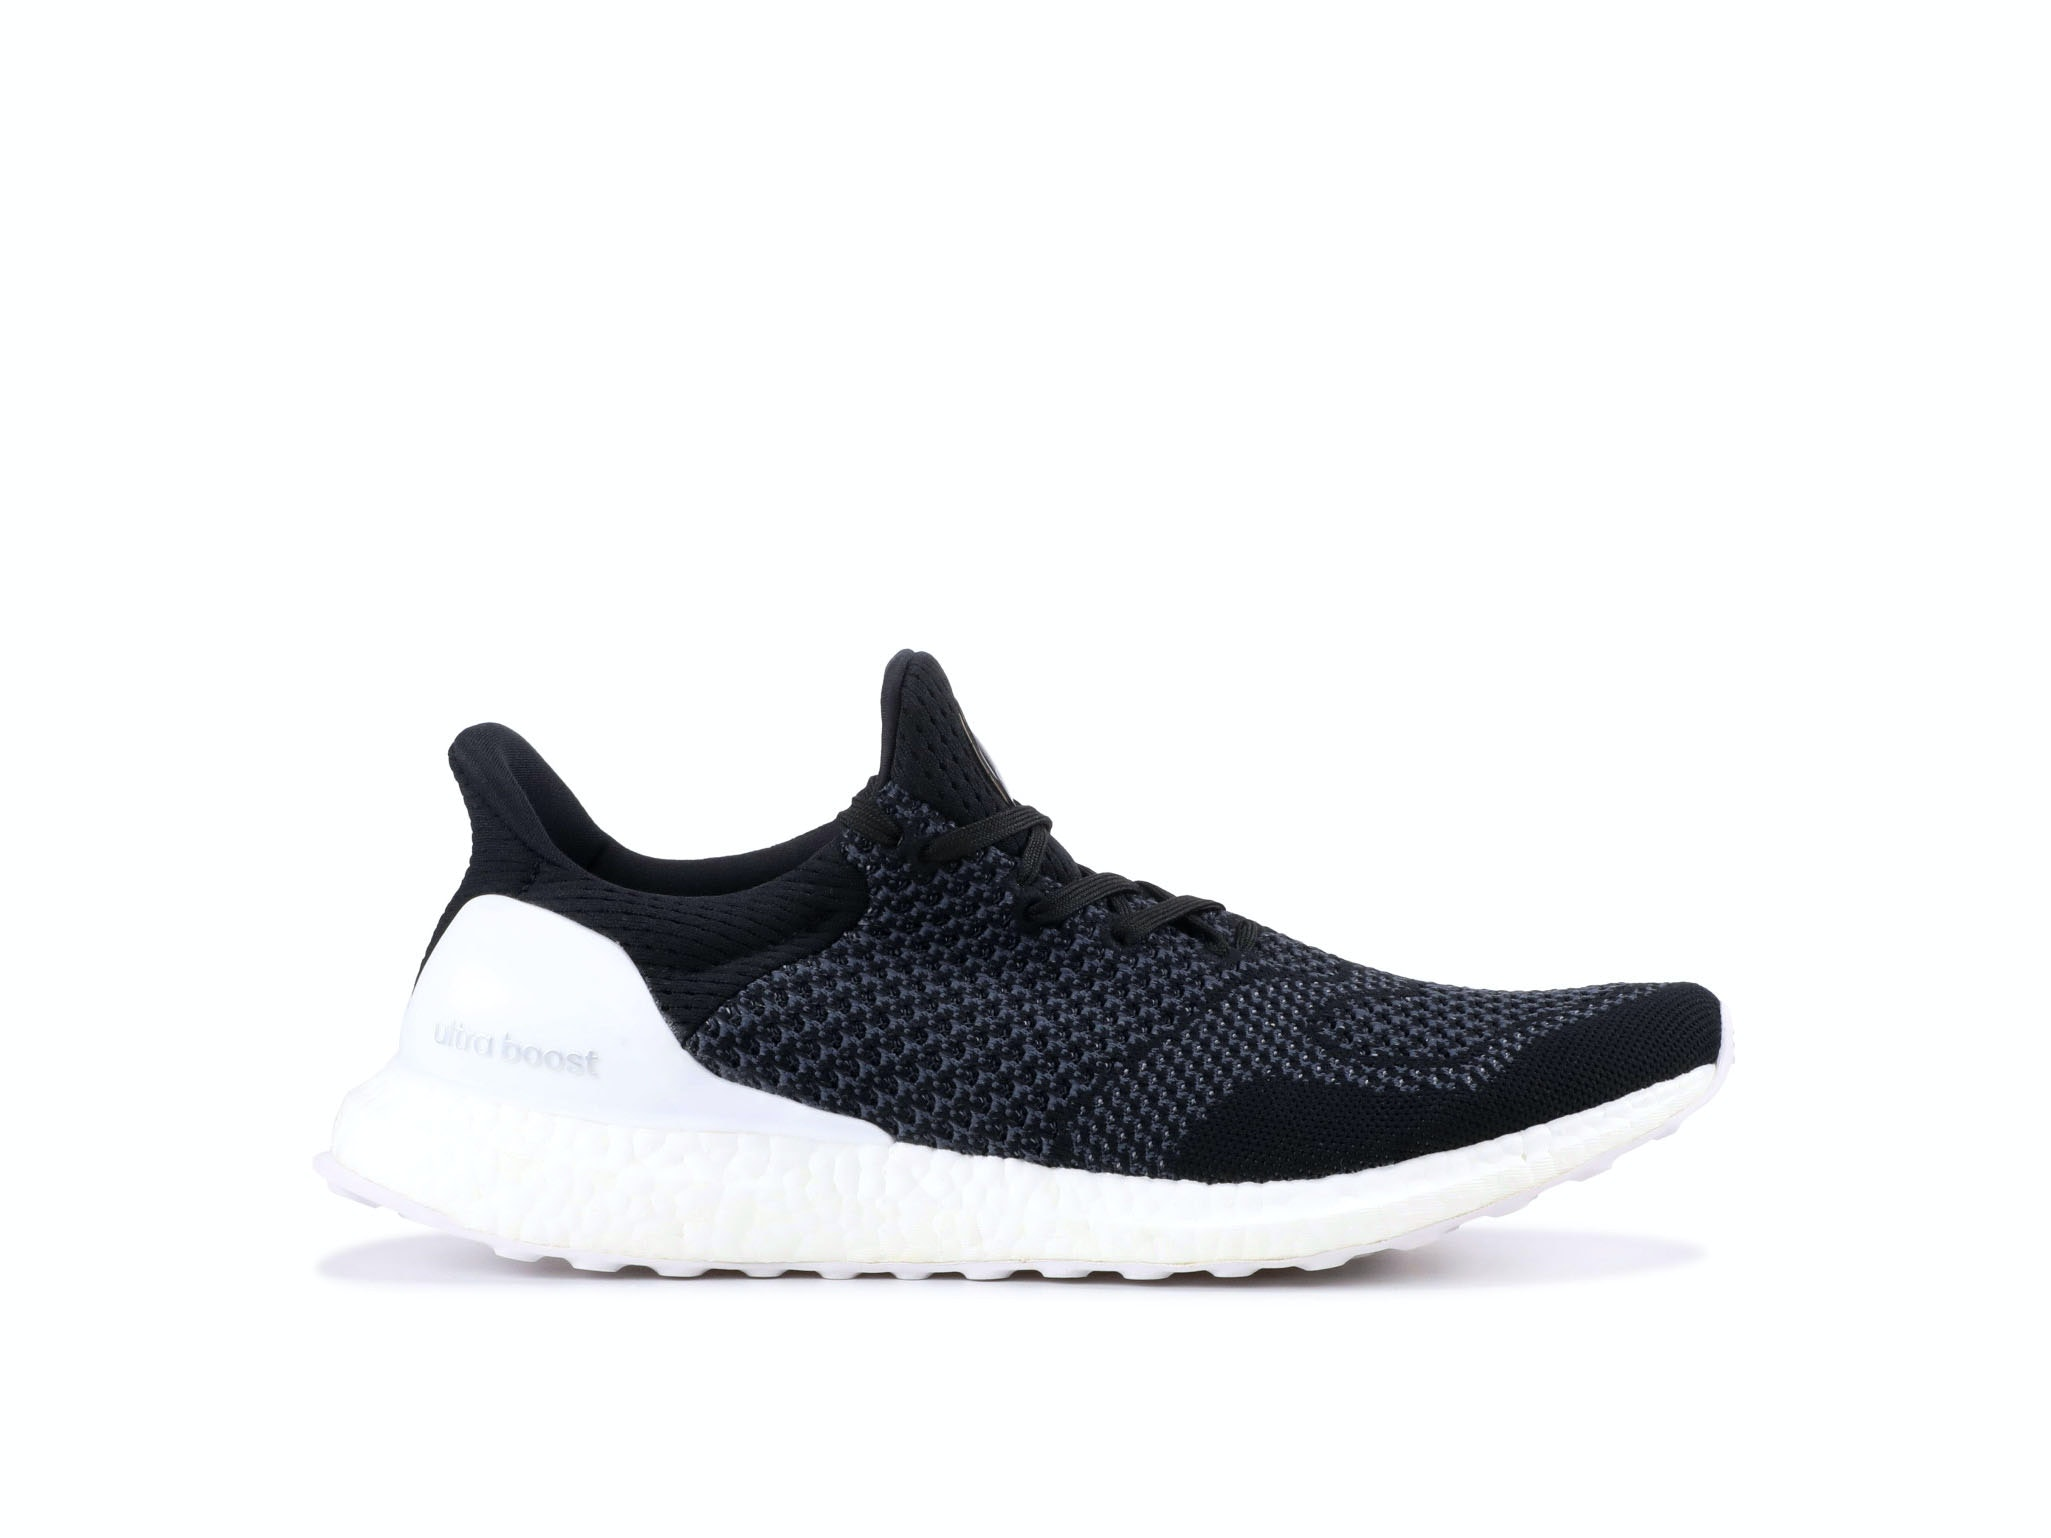 in stock 8b375 e0bc9 UltraBoost Uncaged x Hypebeast